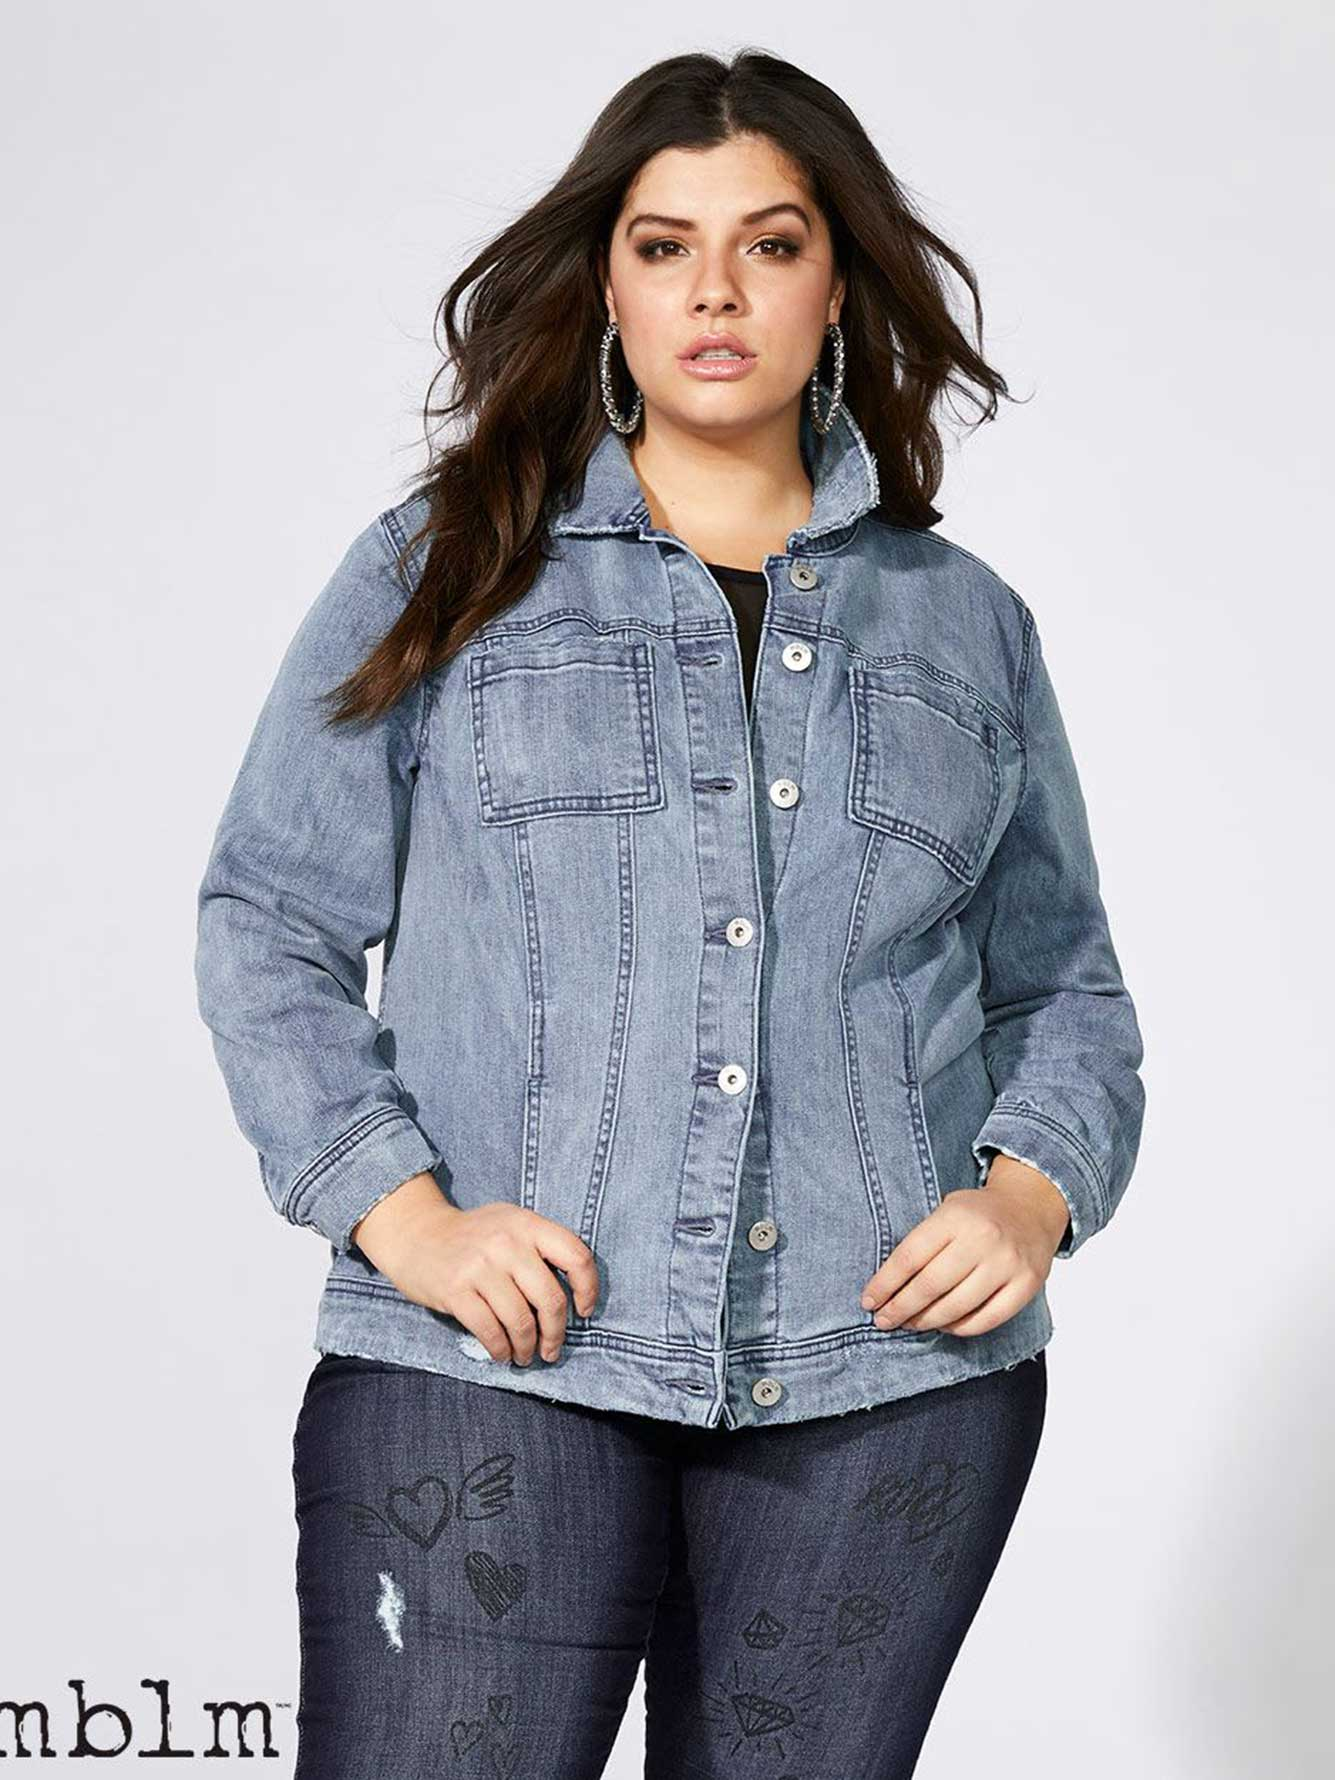 Denim Jacket with Lace-Up Back - mblm